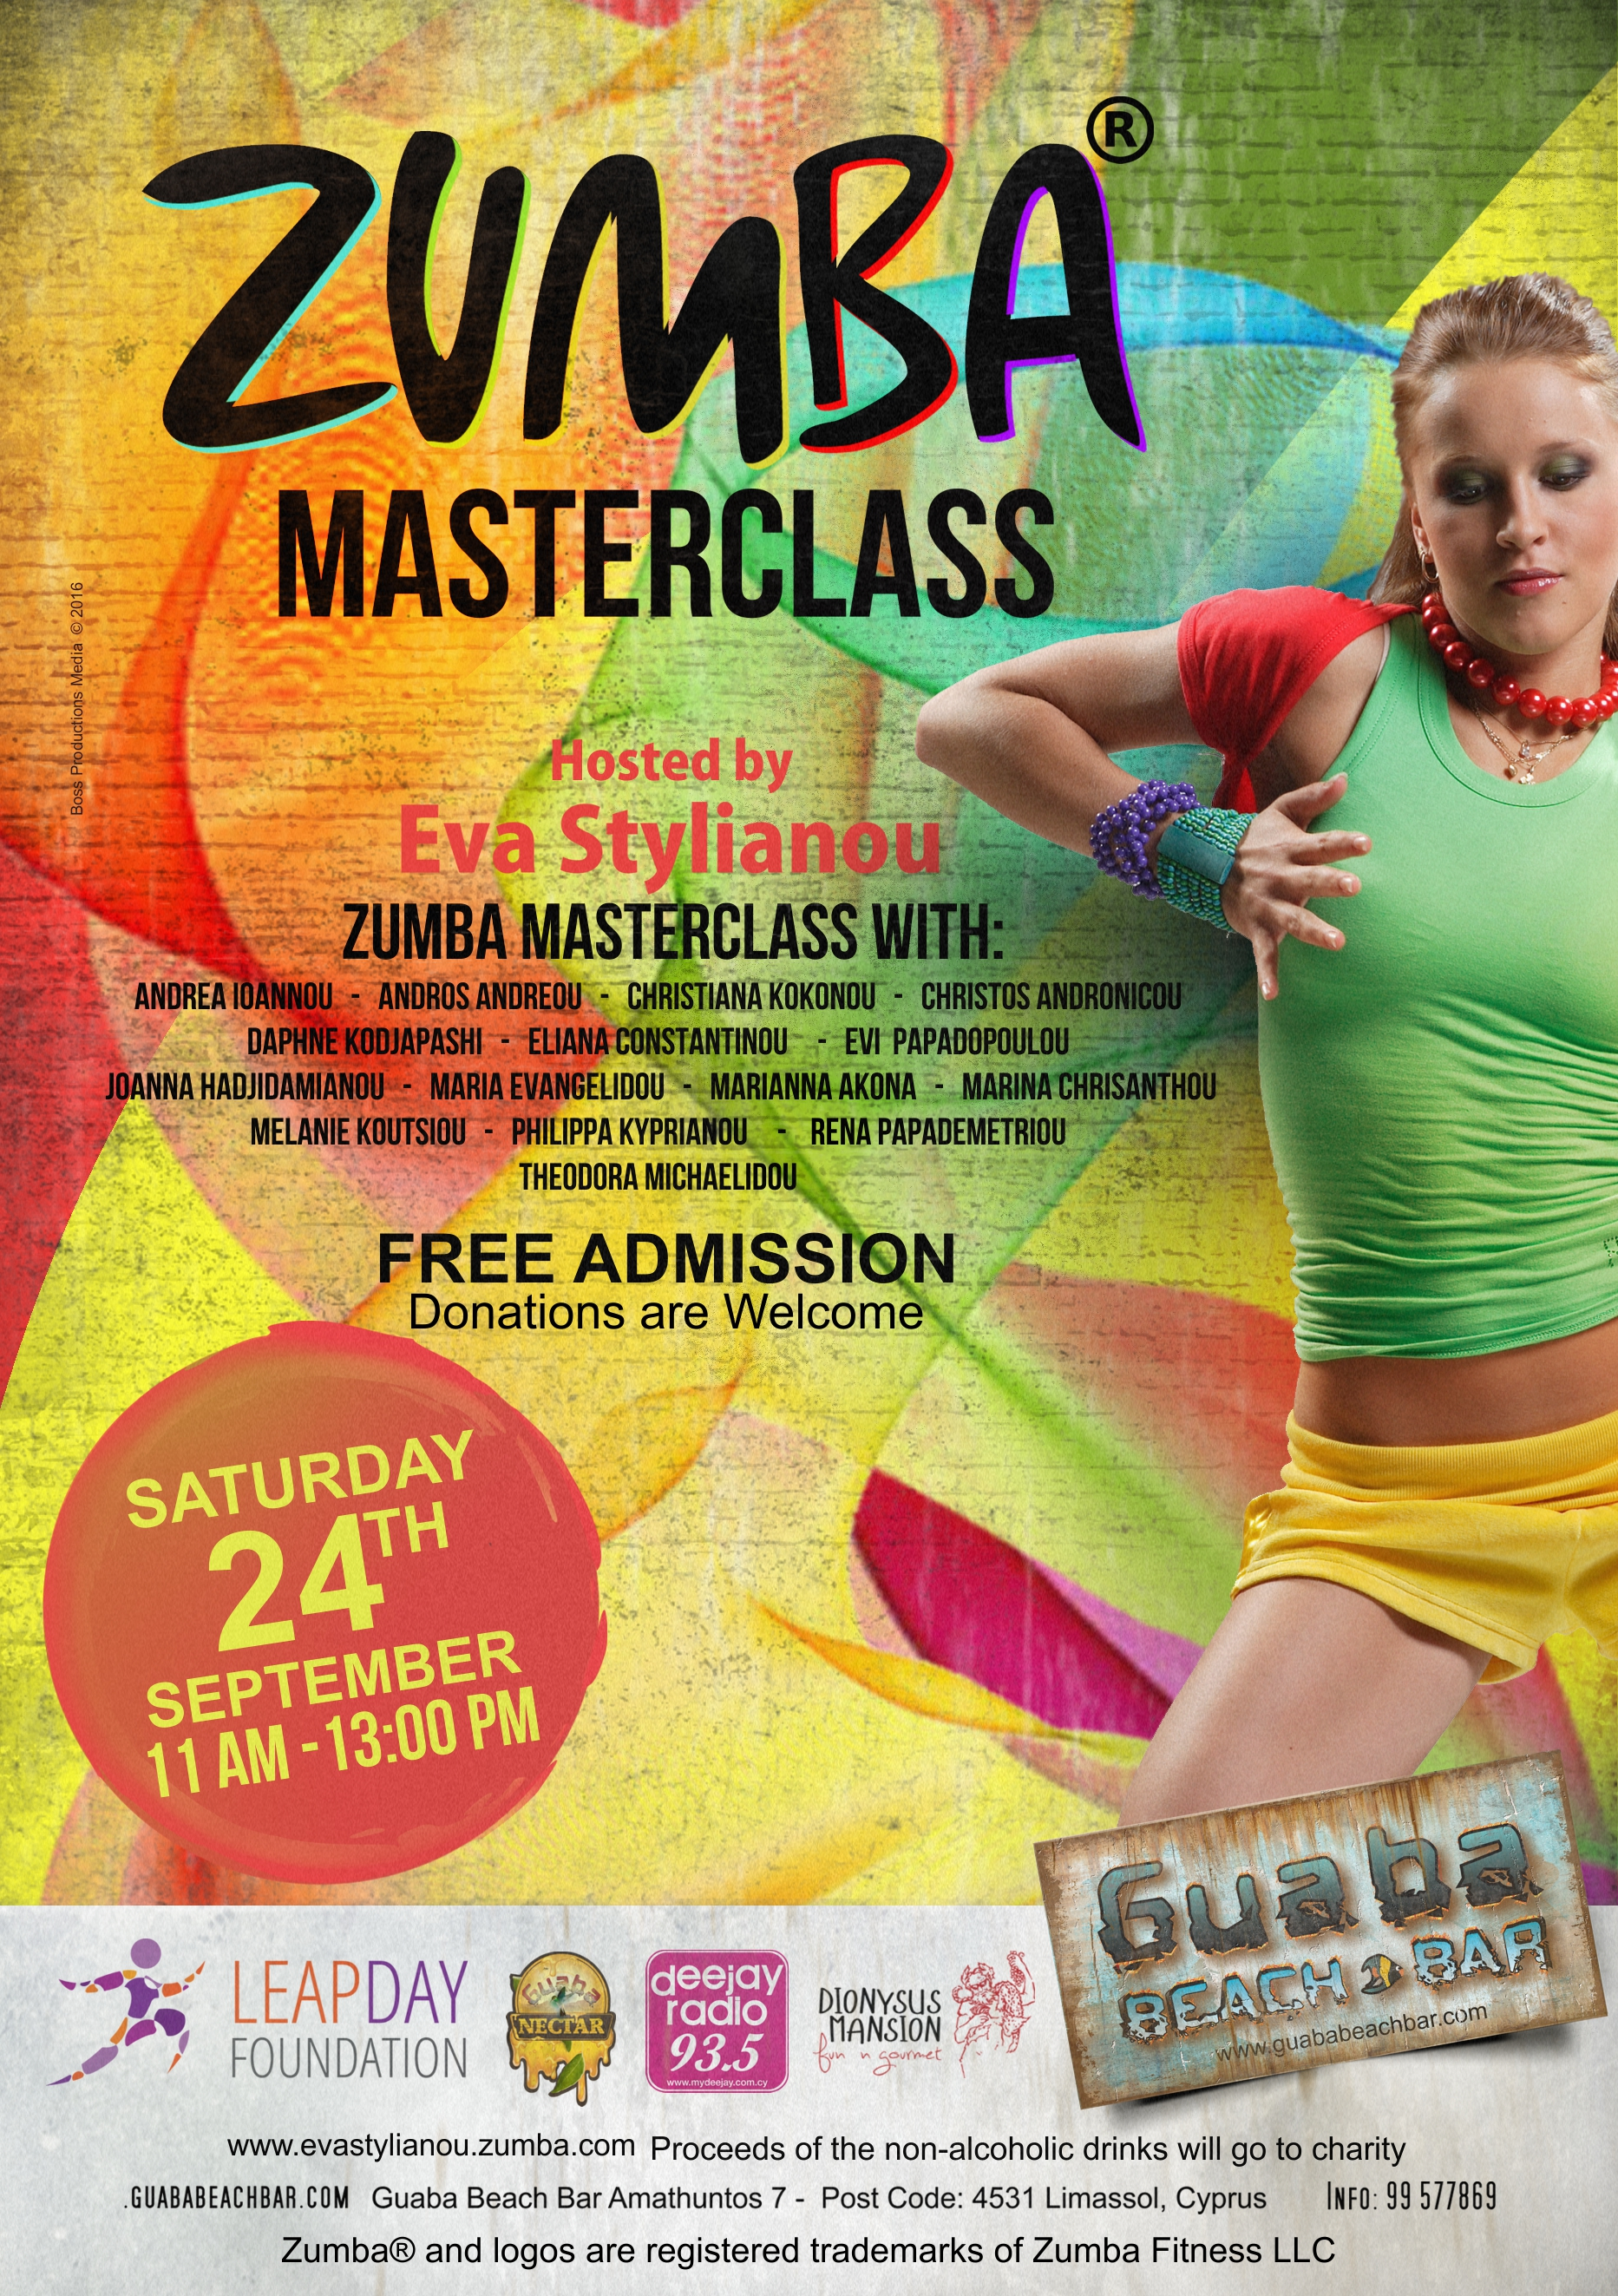 Zumba Masterclass Event | 26 September 2016